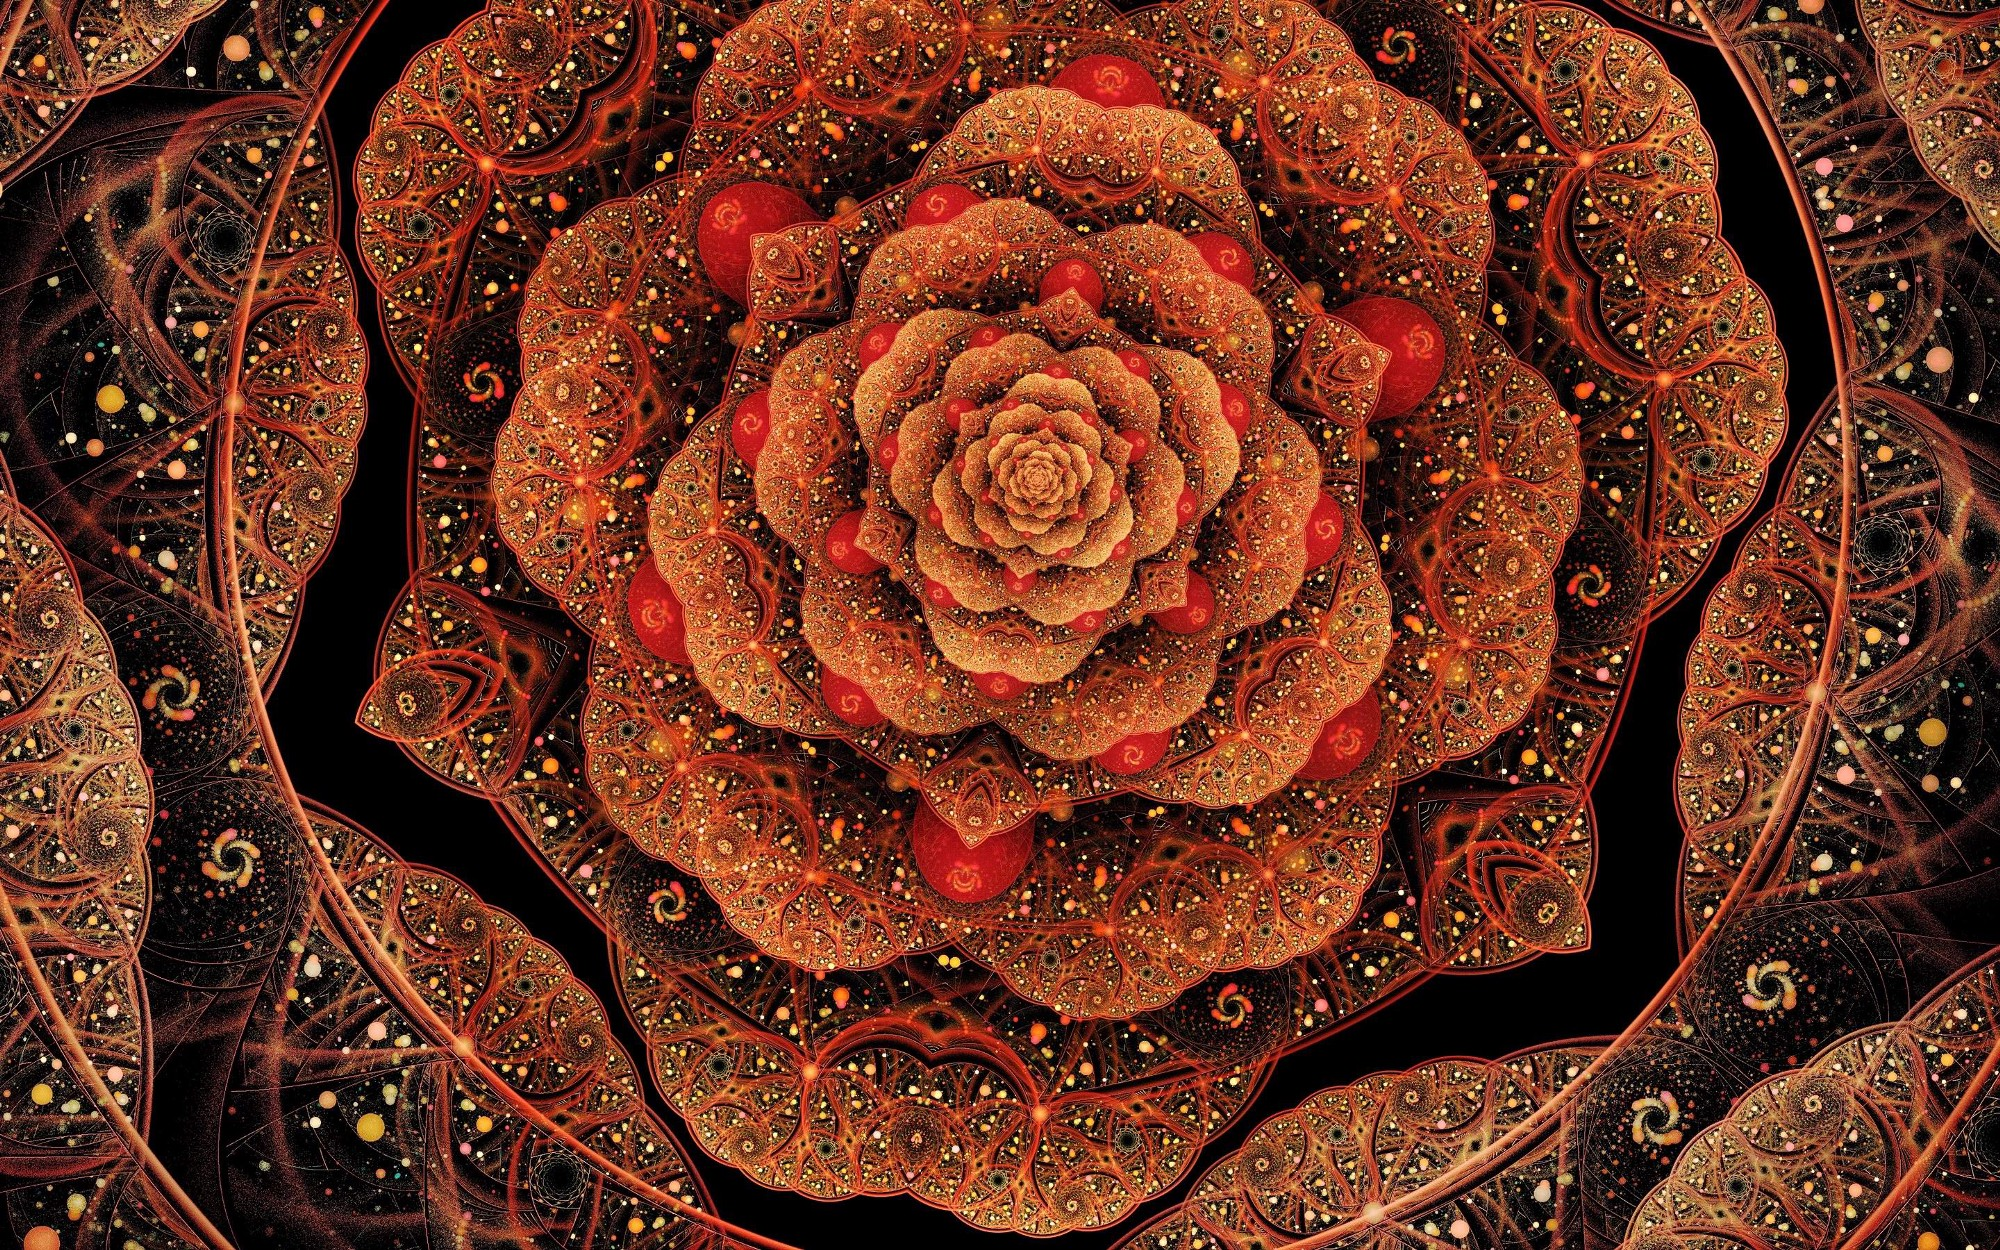 Satanist's View on the Self: Fractal and Deific